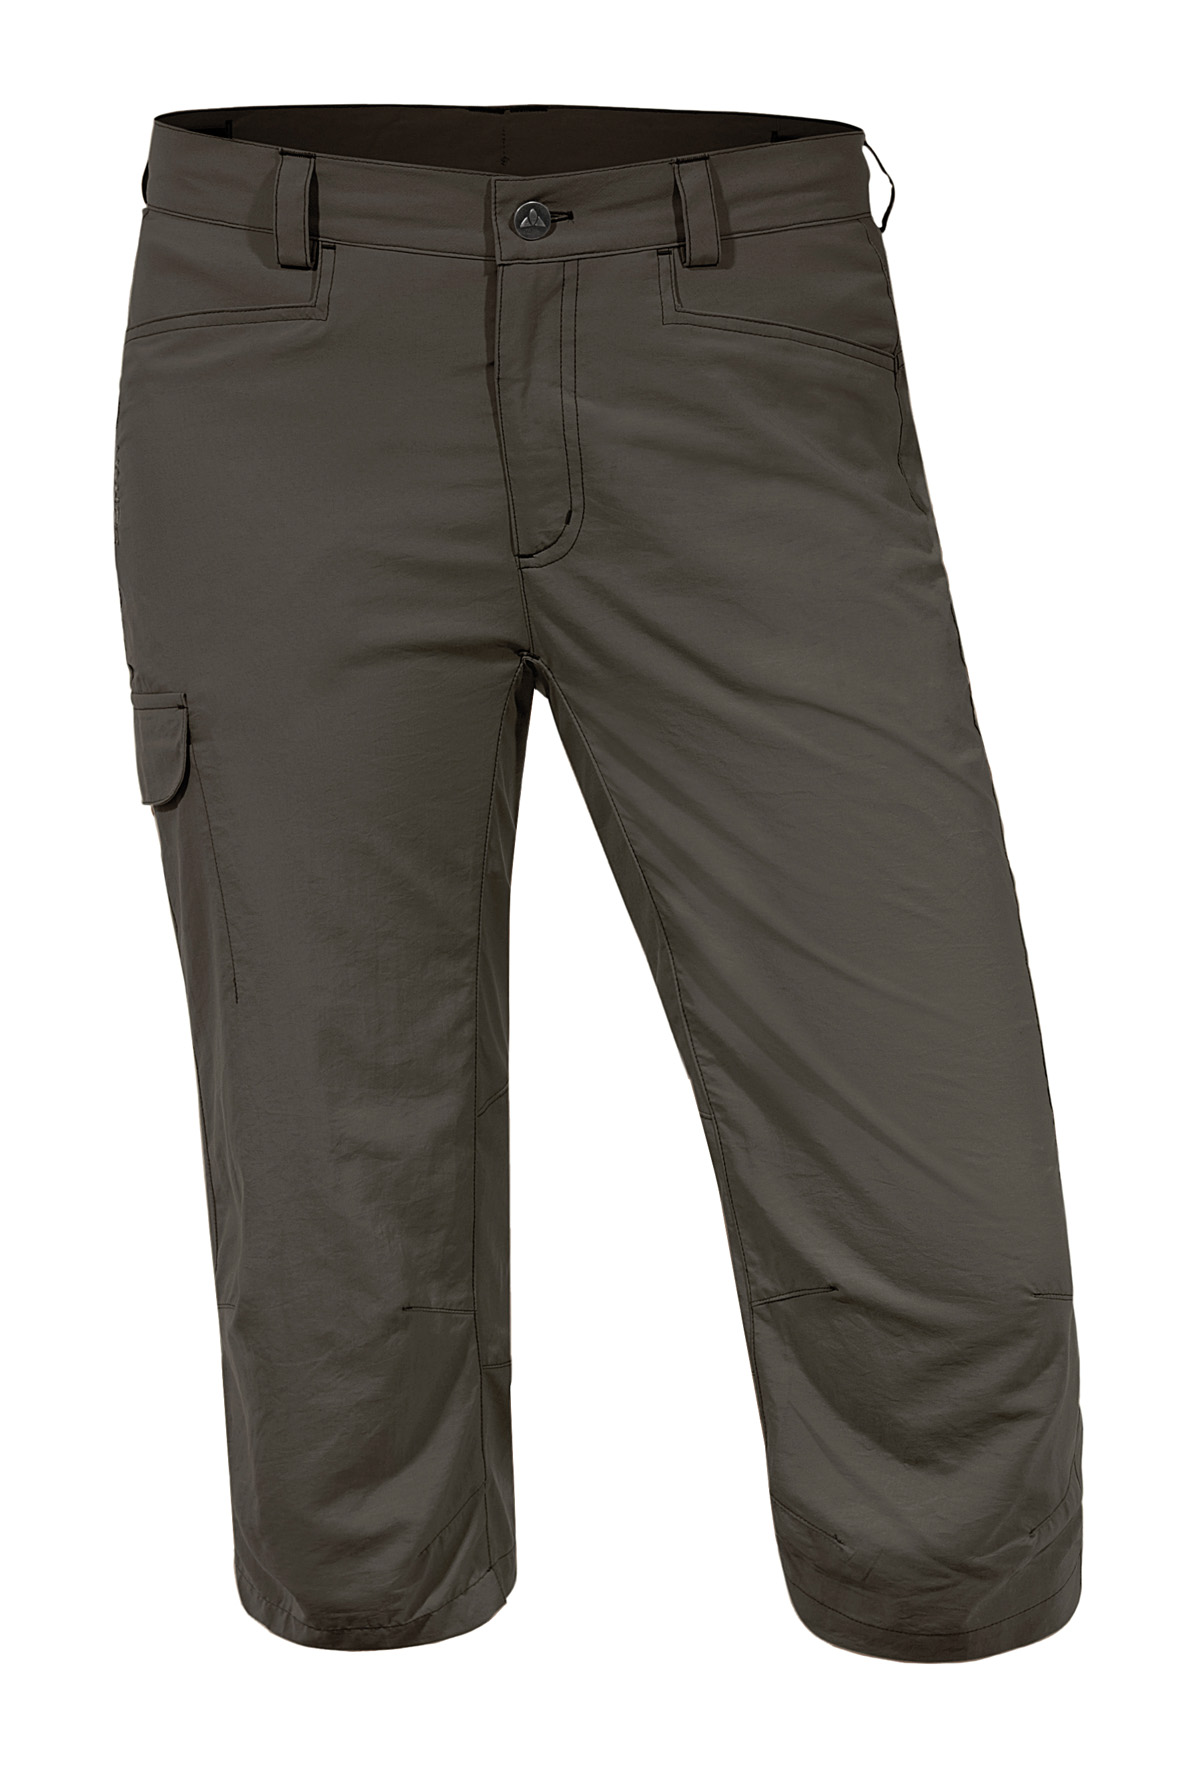 Women´s Lauca 3/4 Pants fir green Größe 36 - schneider-sports